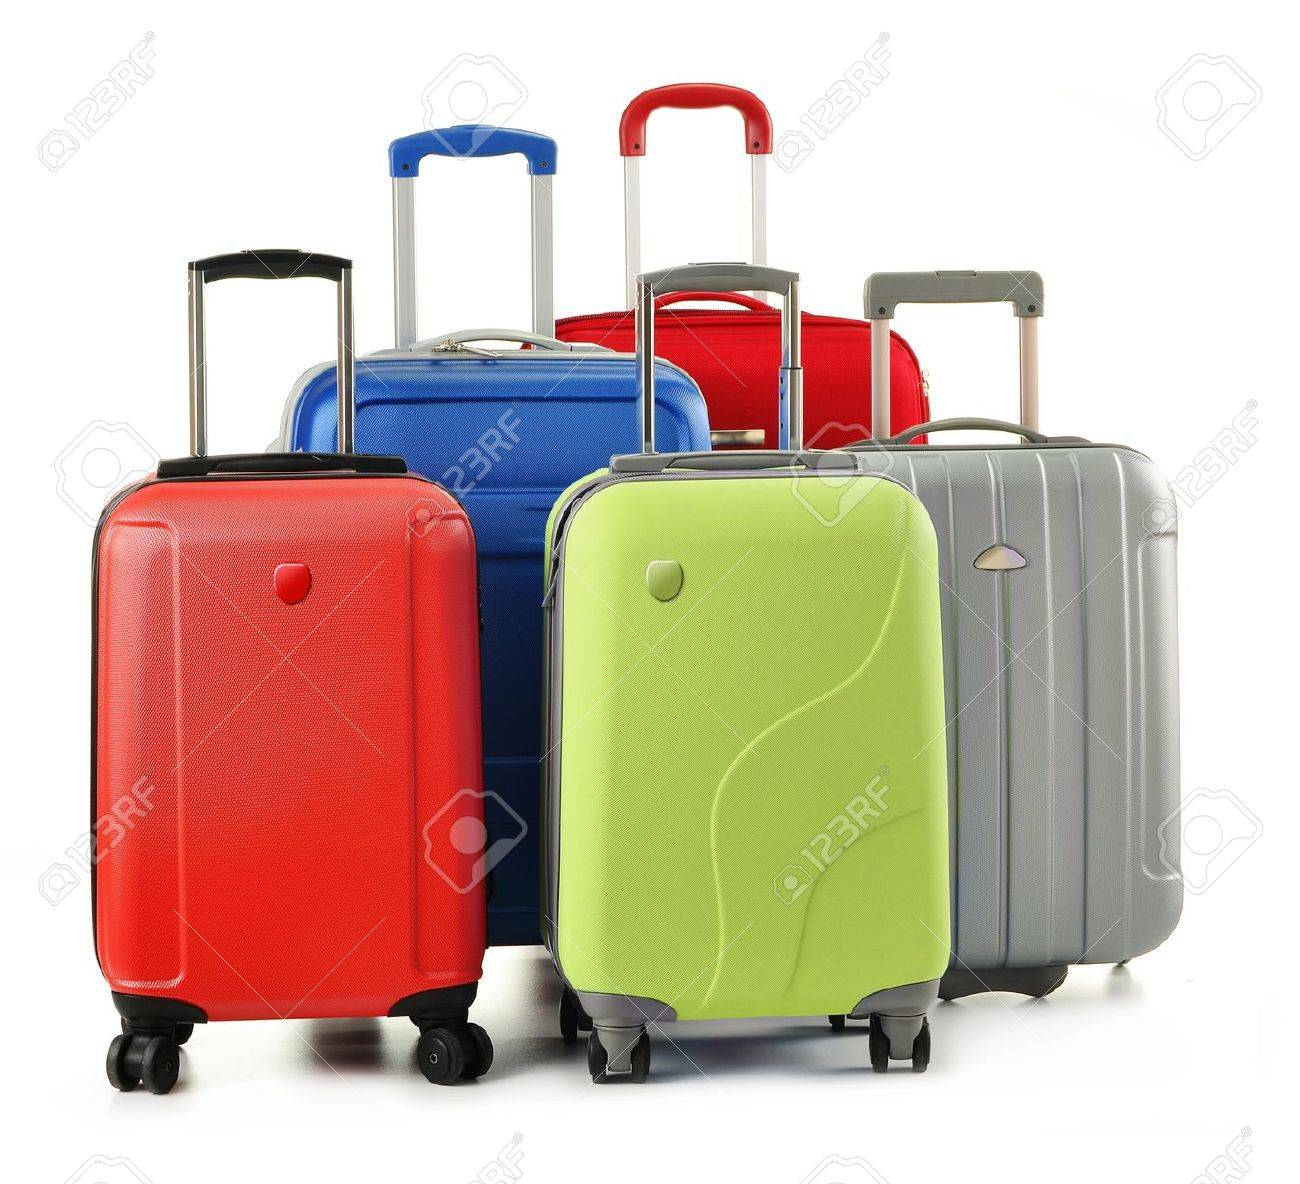 Luggage Consisting Of Polycarbonate Suitcases Isolated On White ...